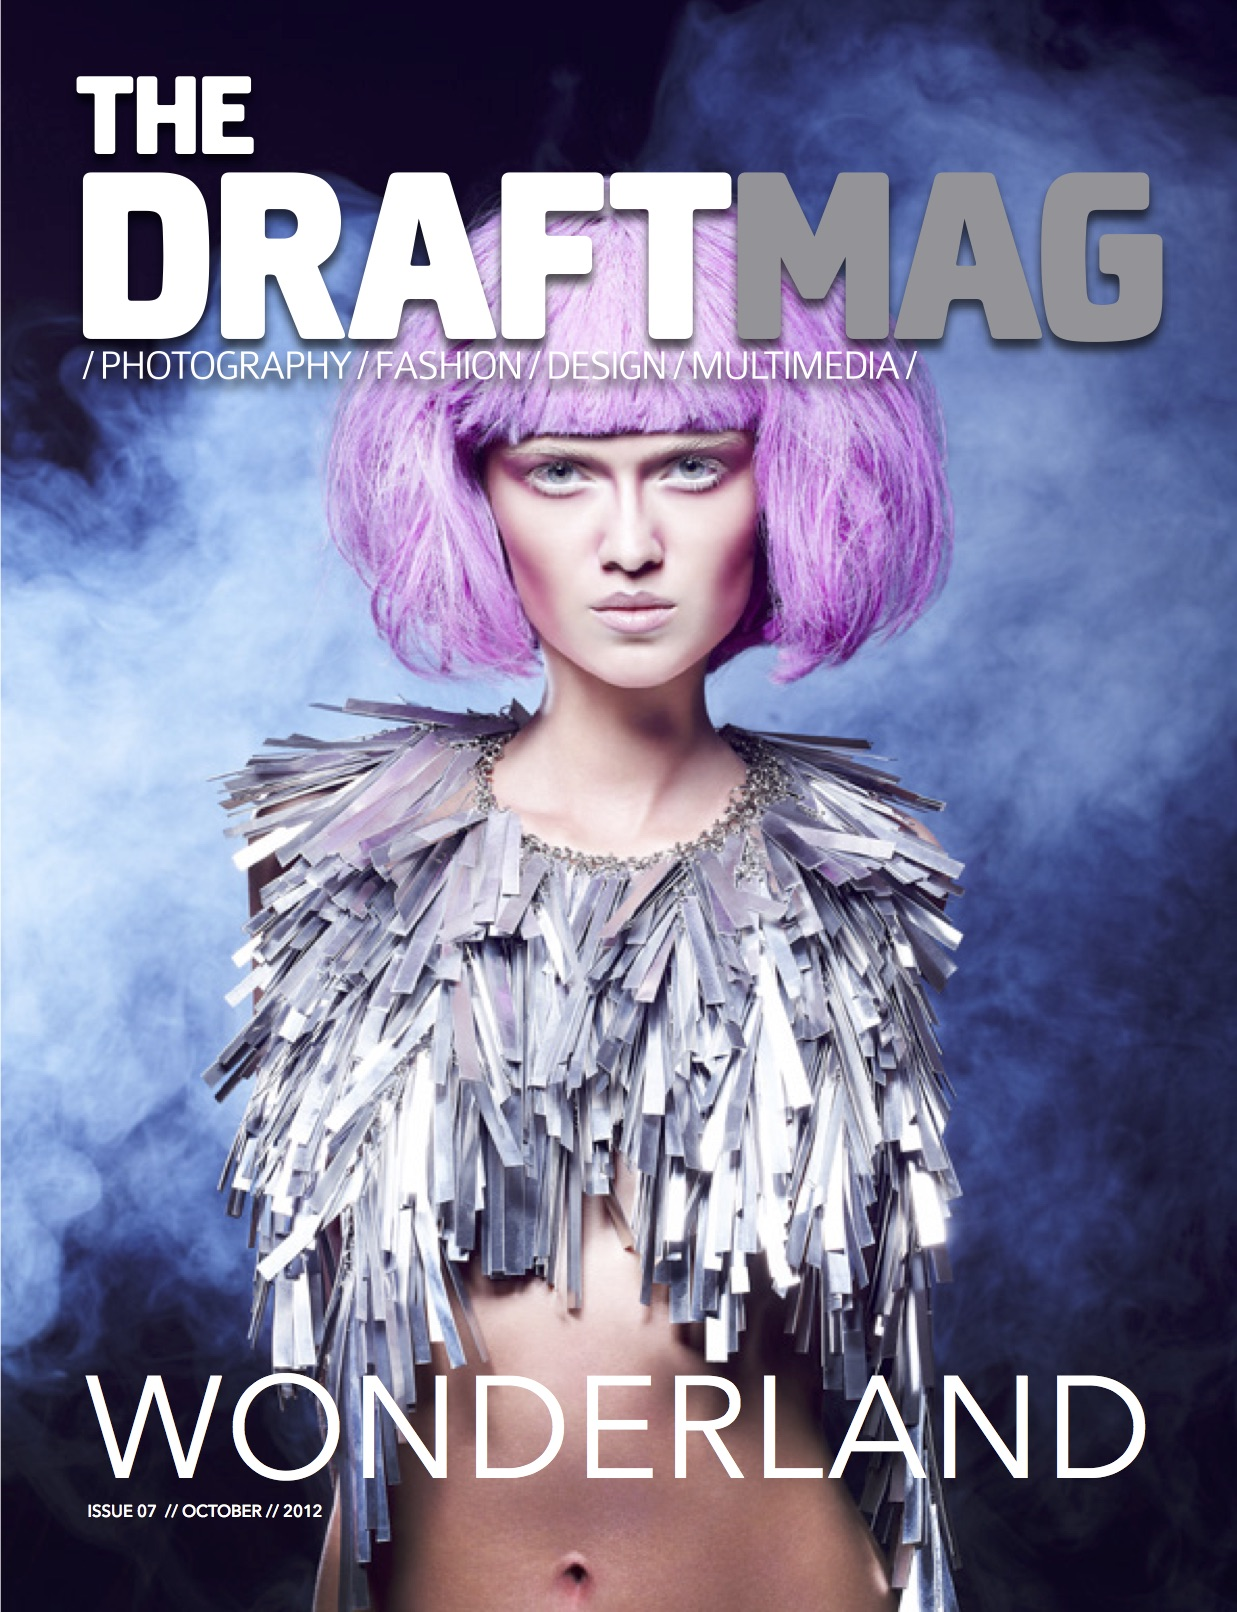 The Draft Mag Issue #07.Click   here   to see the full issue.